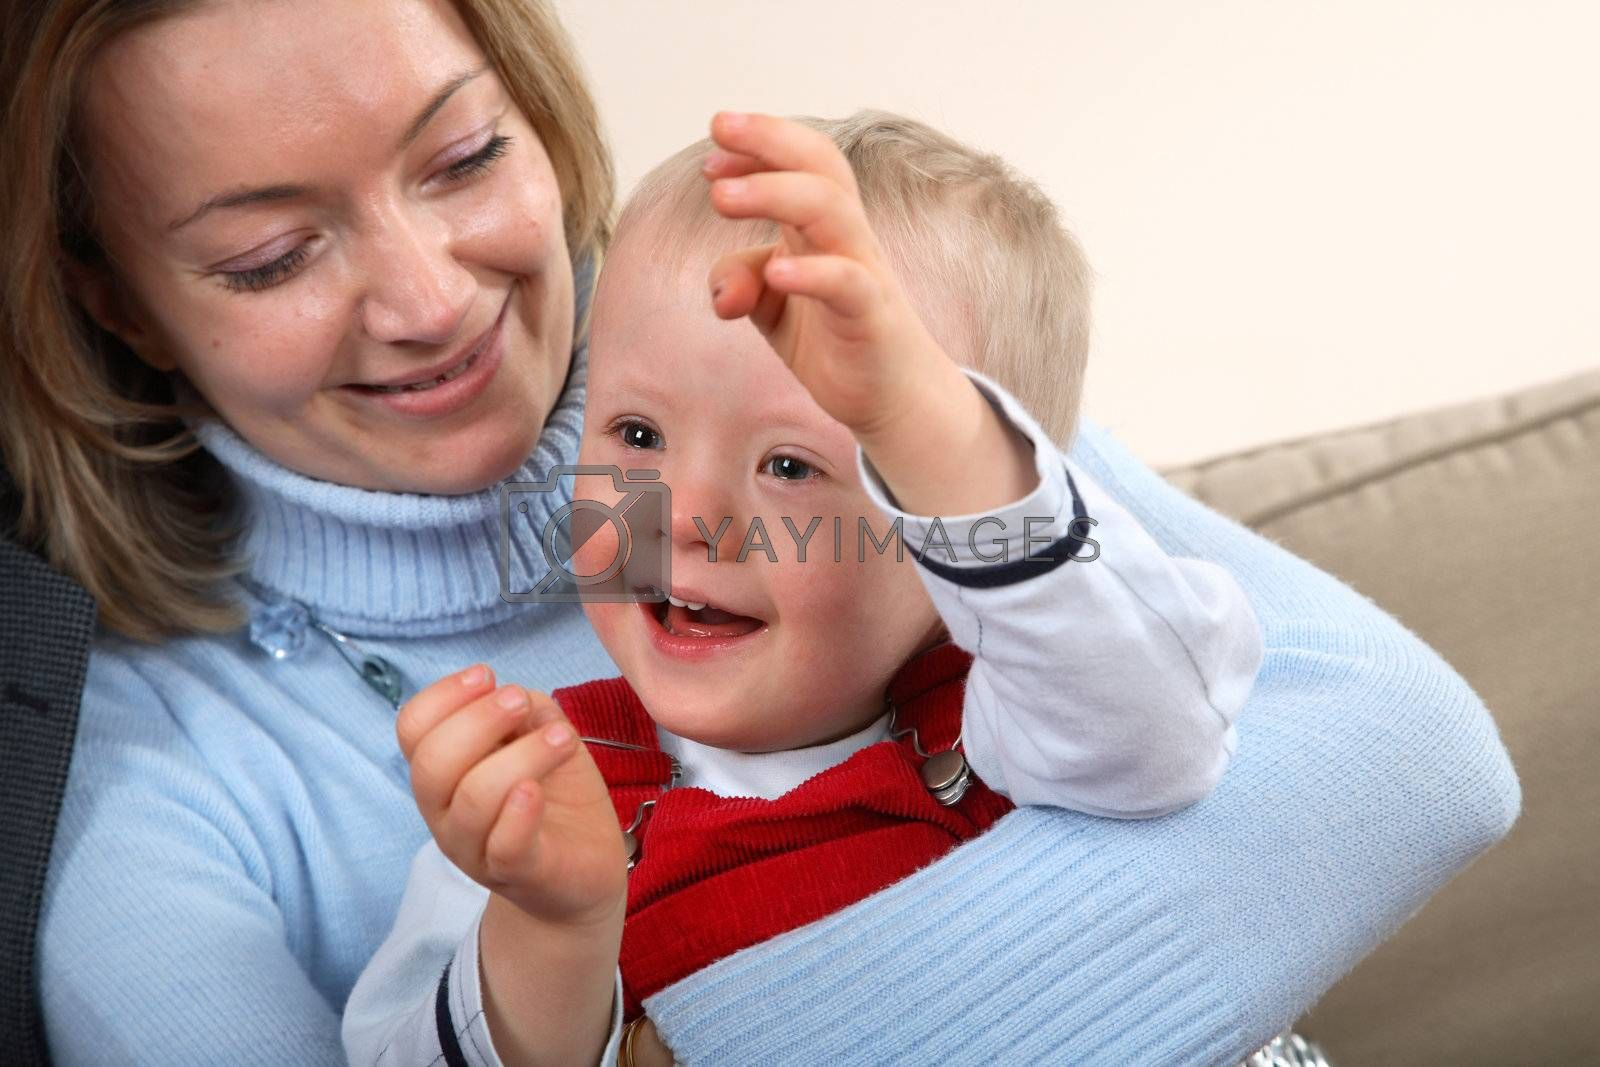 A closeup portrait view of a young boy with Down Syndrome and his mother.